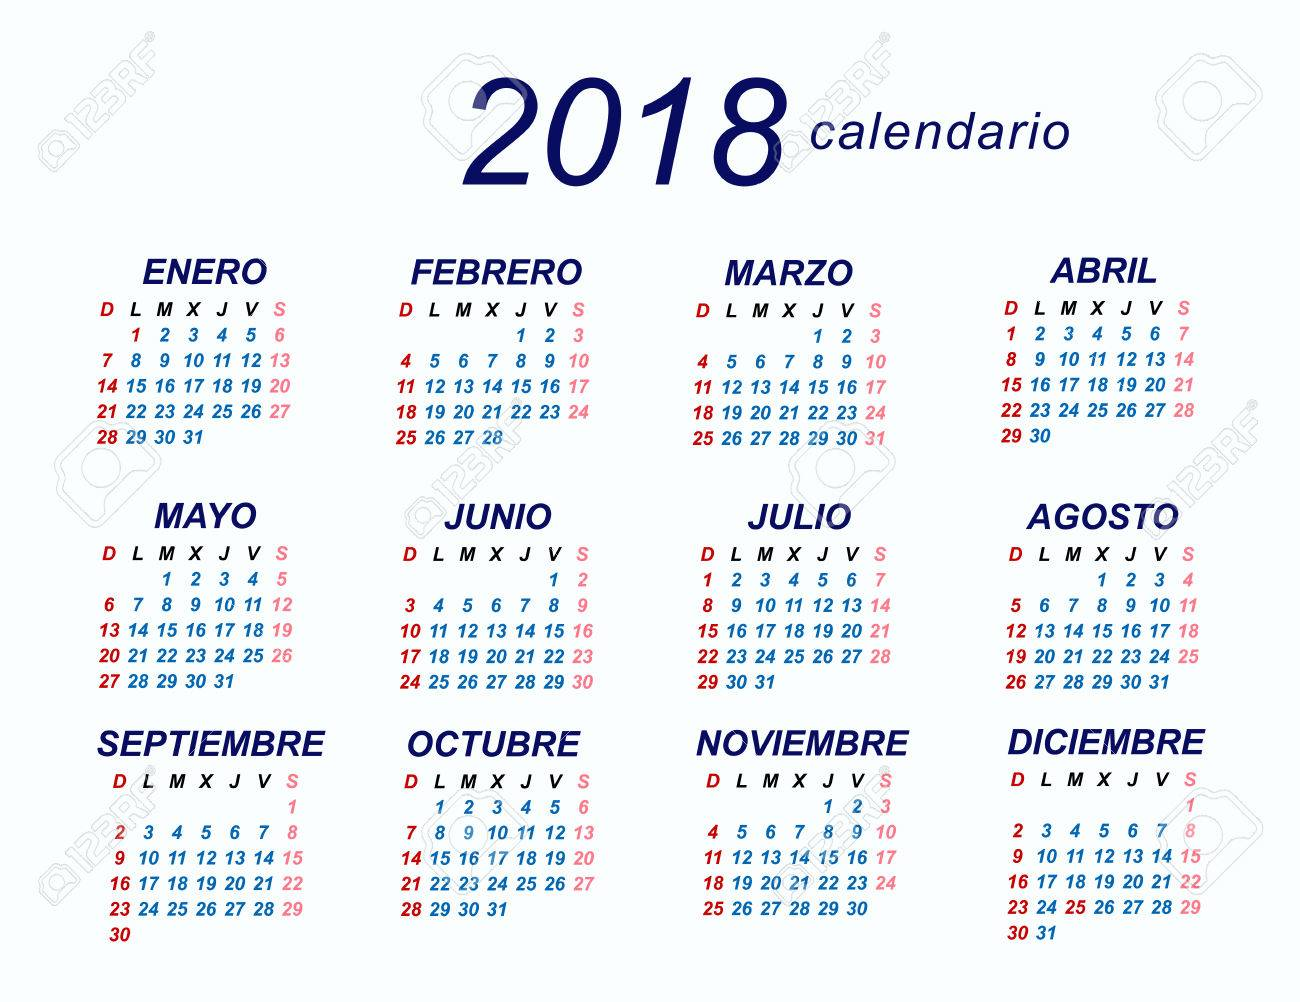 2018 spanish calendar stock vector 70462386